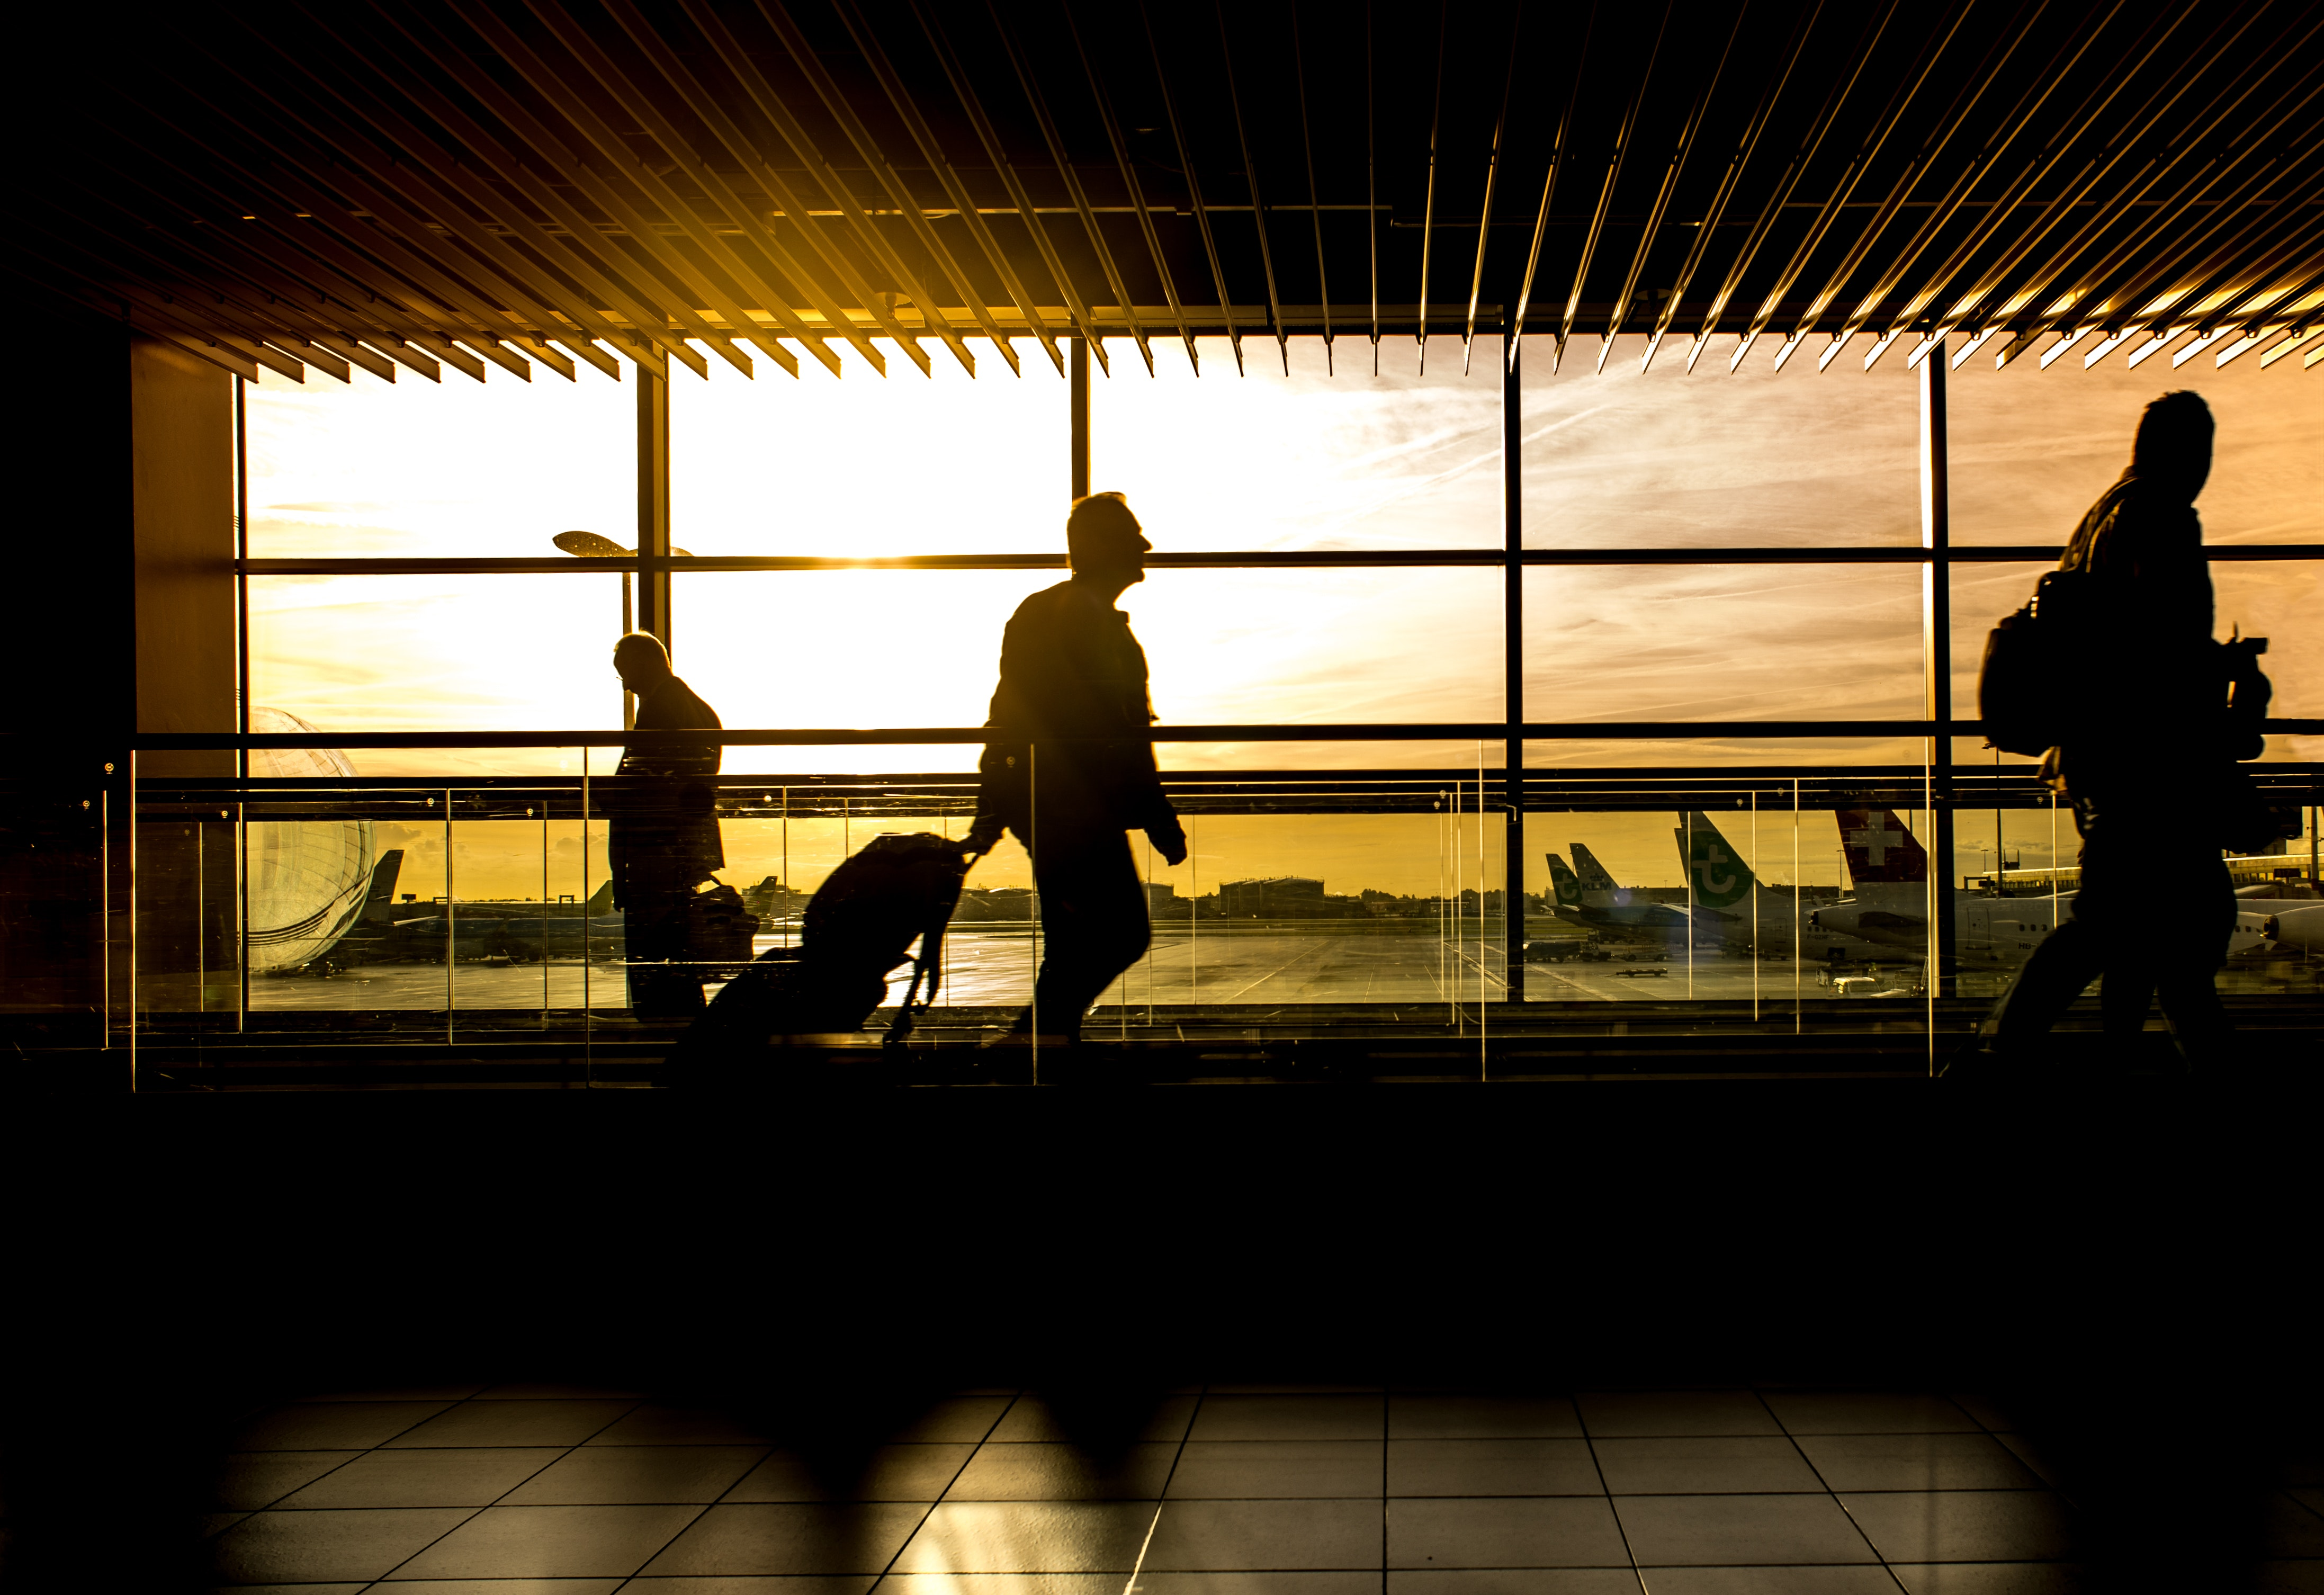 Silhouette of Person in Airport, Airport, Architecture, Dawn, Dusk, HQ Photo